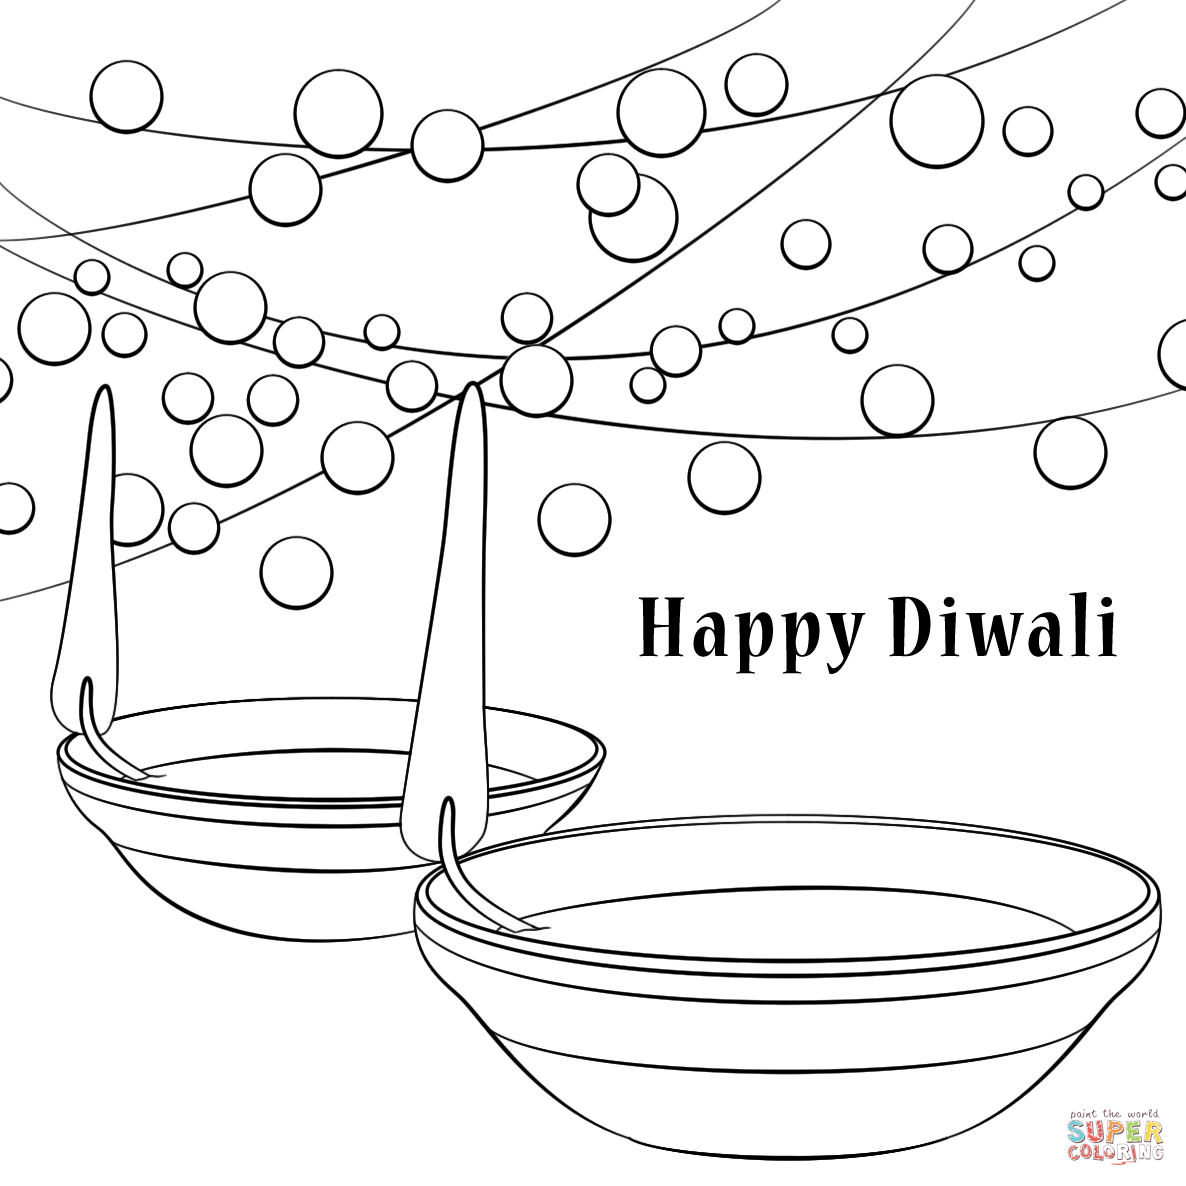 diwali cards to colour happy diwali card coloring page free printable coloring diwali colour to cards